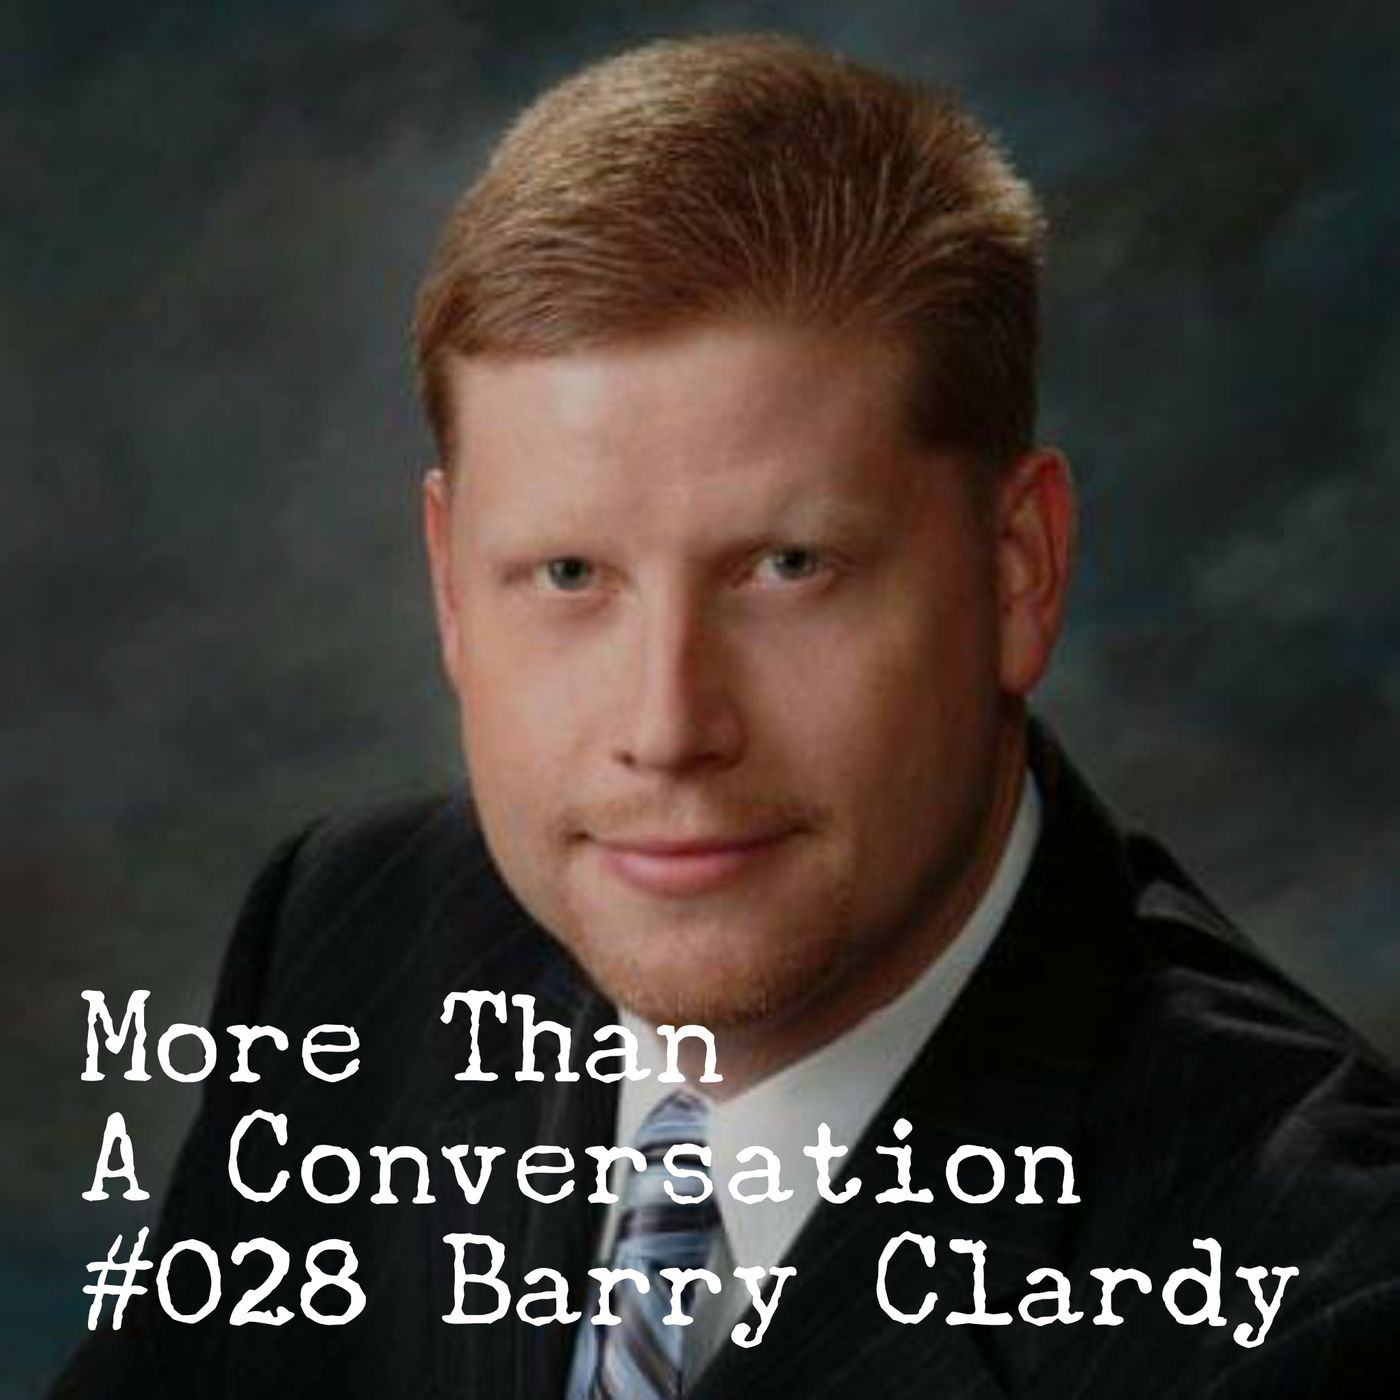 #028 Barry Clardy, Pastor